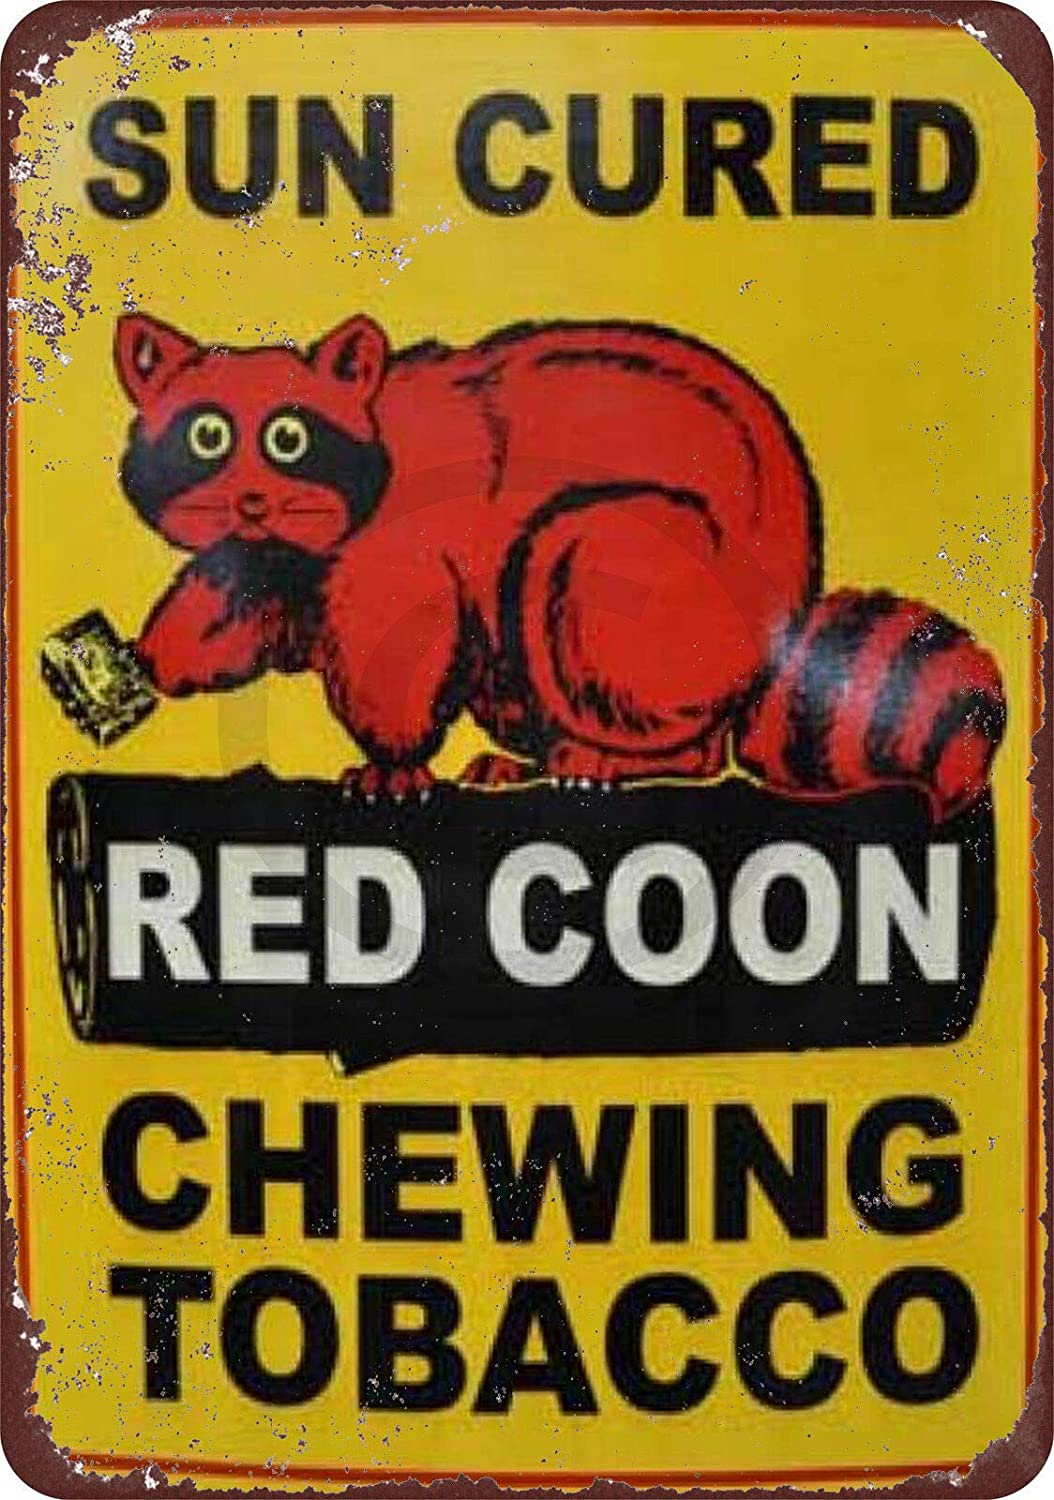 AMELIA SHARPE Metal Sign Retro Sun Cures red Raccoon Chewing tobaccoSign Wall 12x8 inches Decoration Home Restaurant bar cave Outdoor Vintage tin Sign Decoration Poster